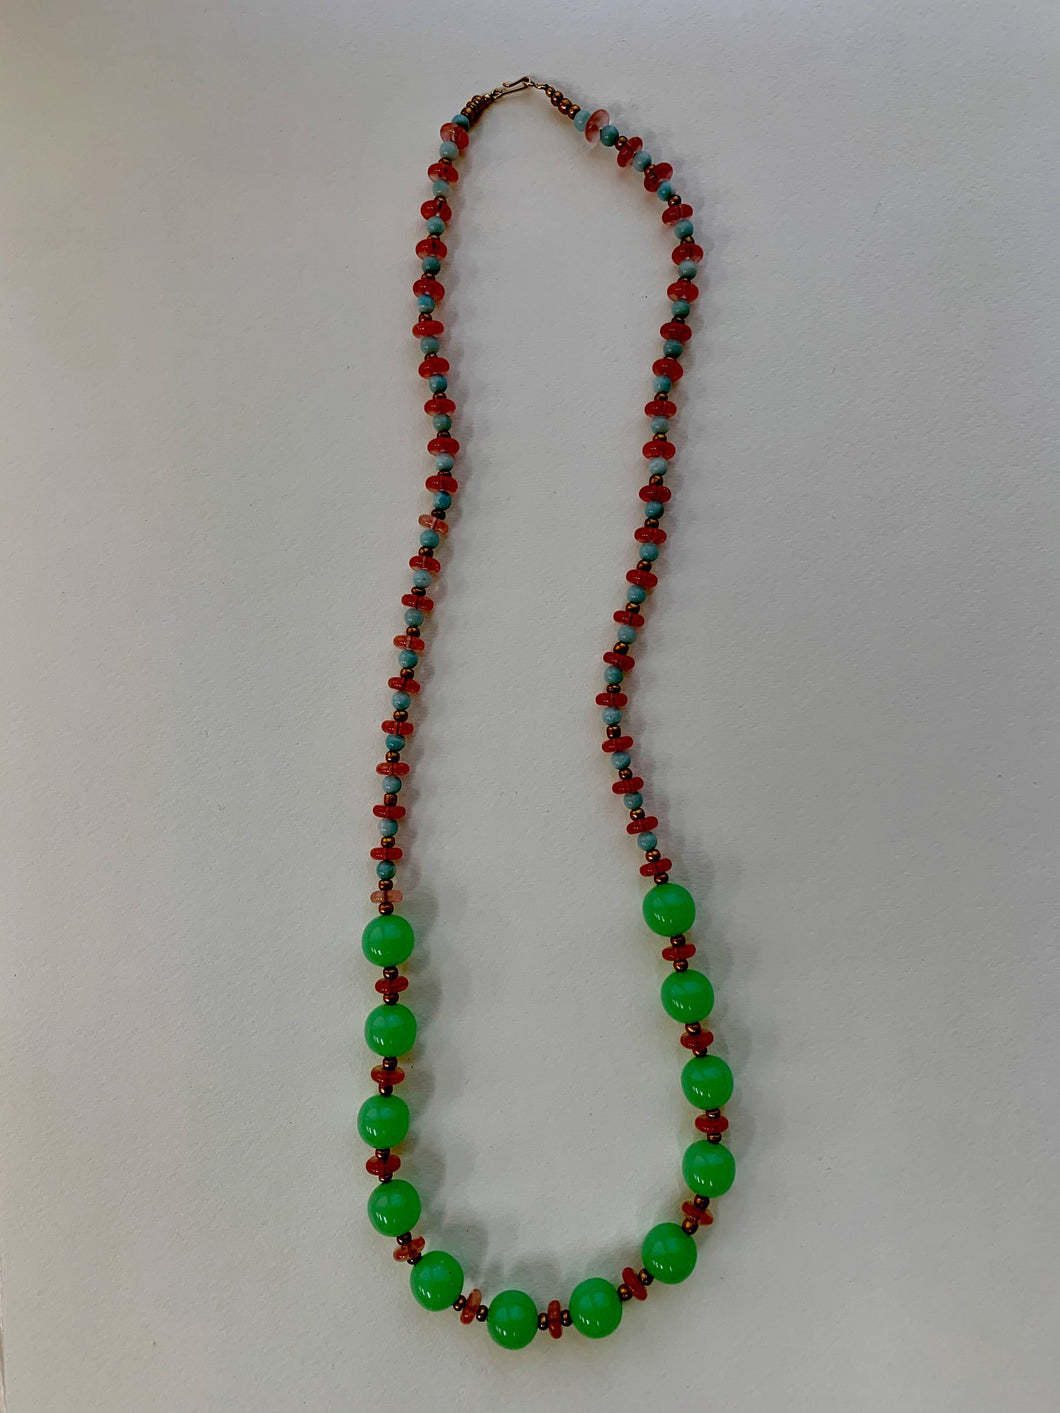 Vintage beaded necklace: glass beads with gold clasp